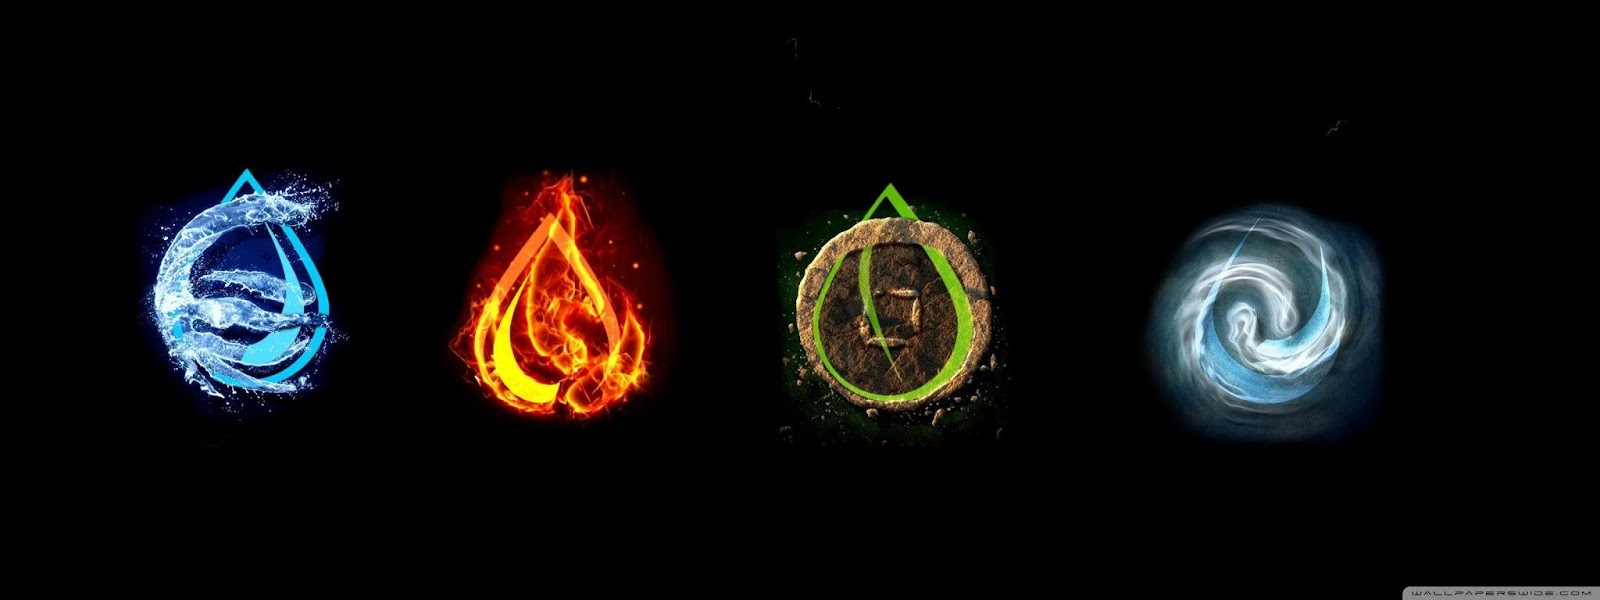 The four elements: water, fire, earth, and air